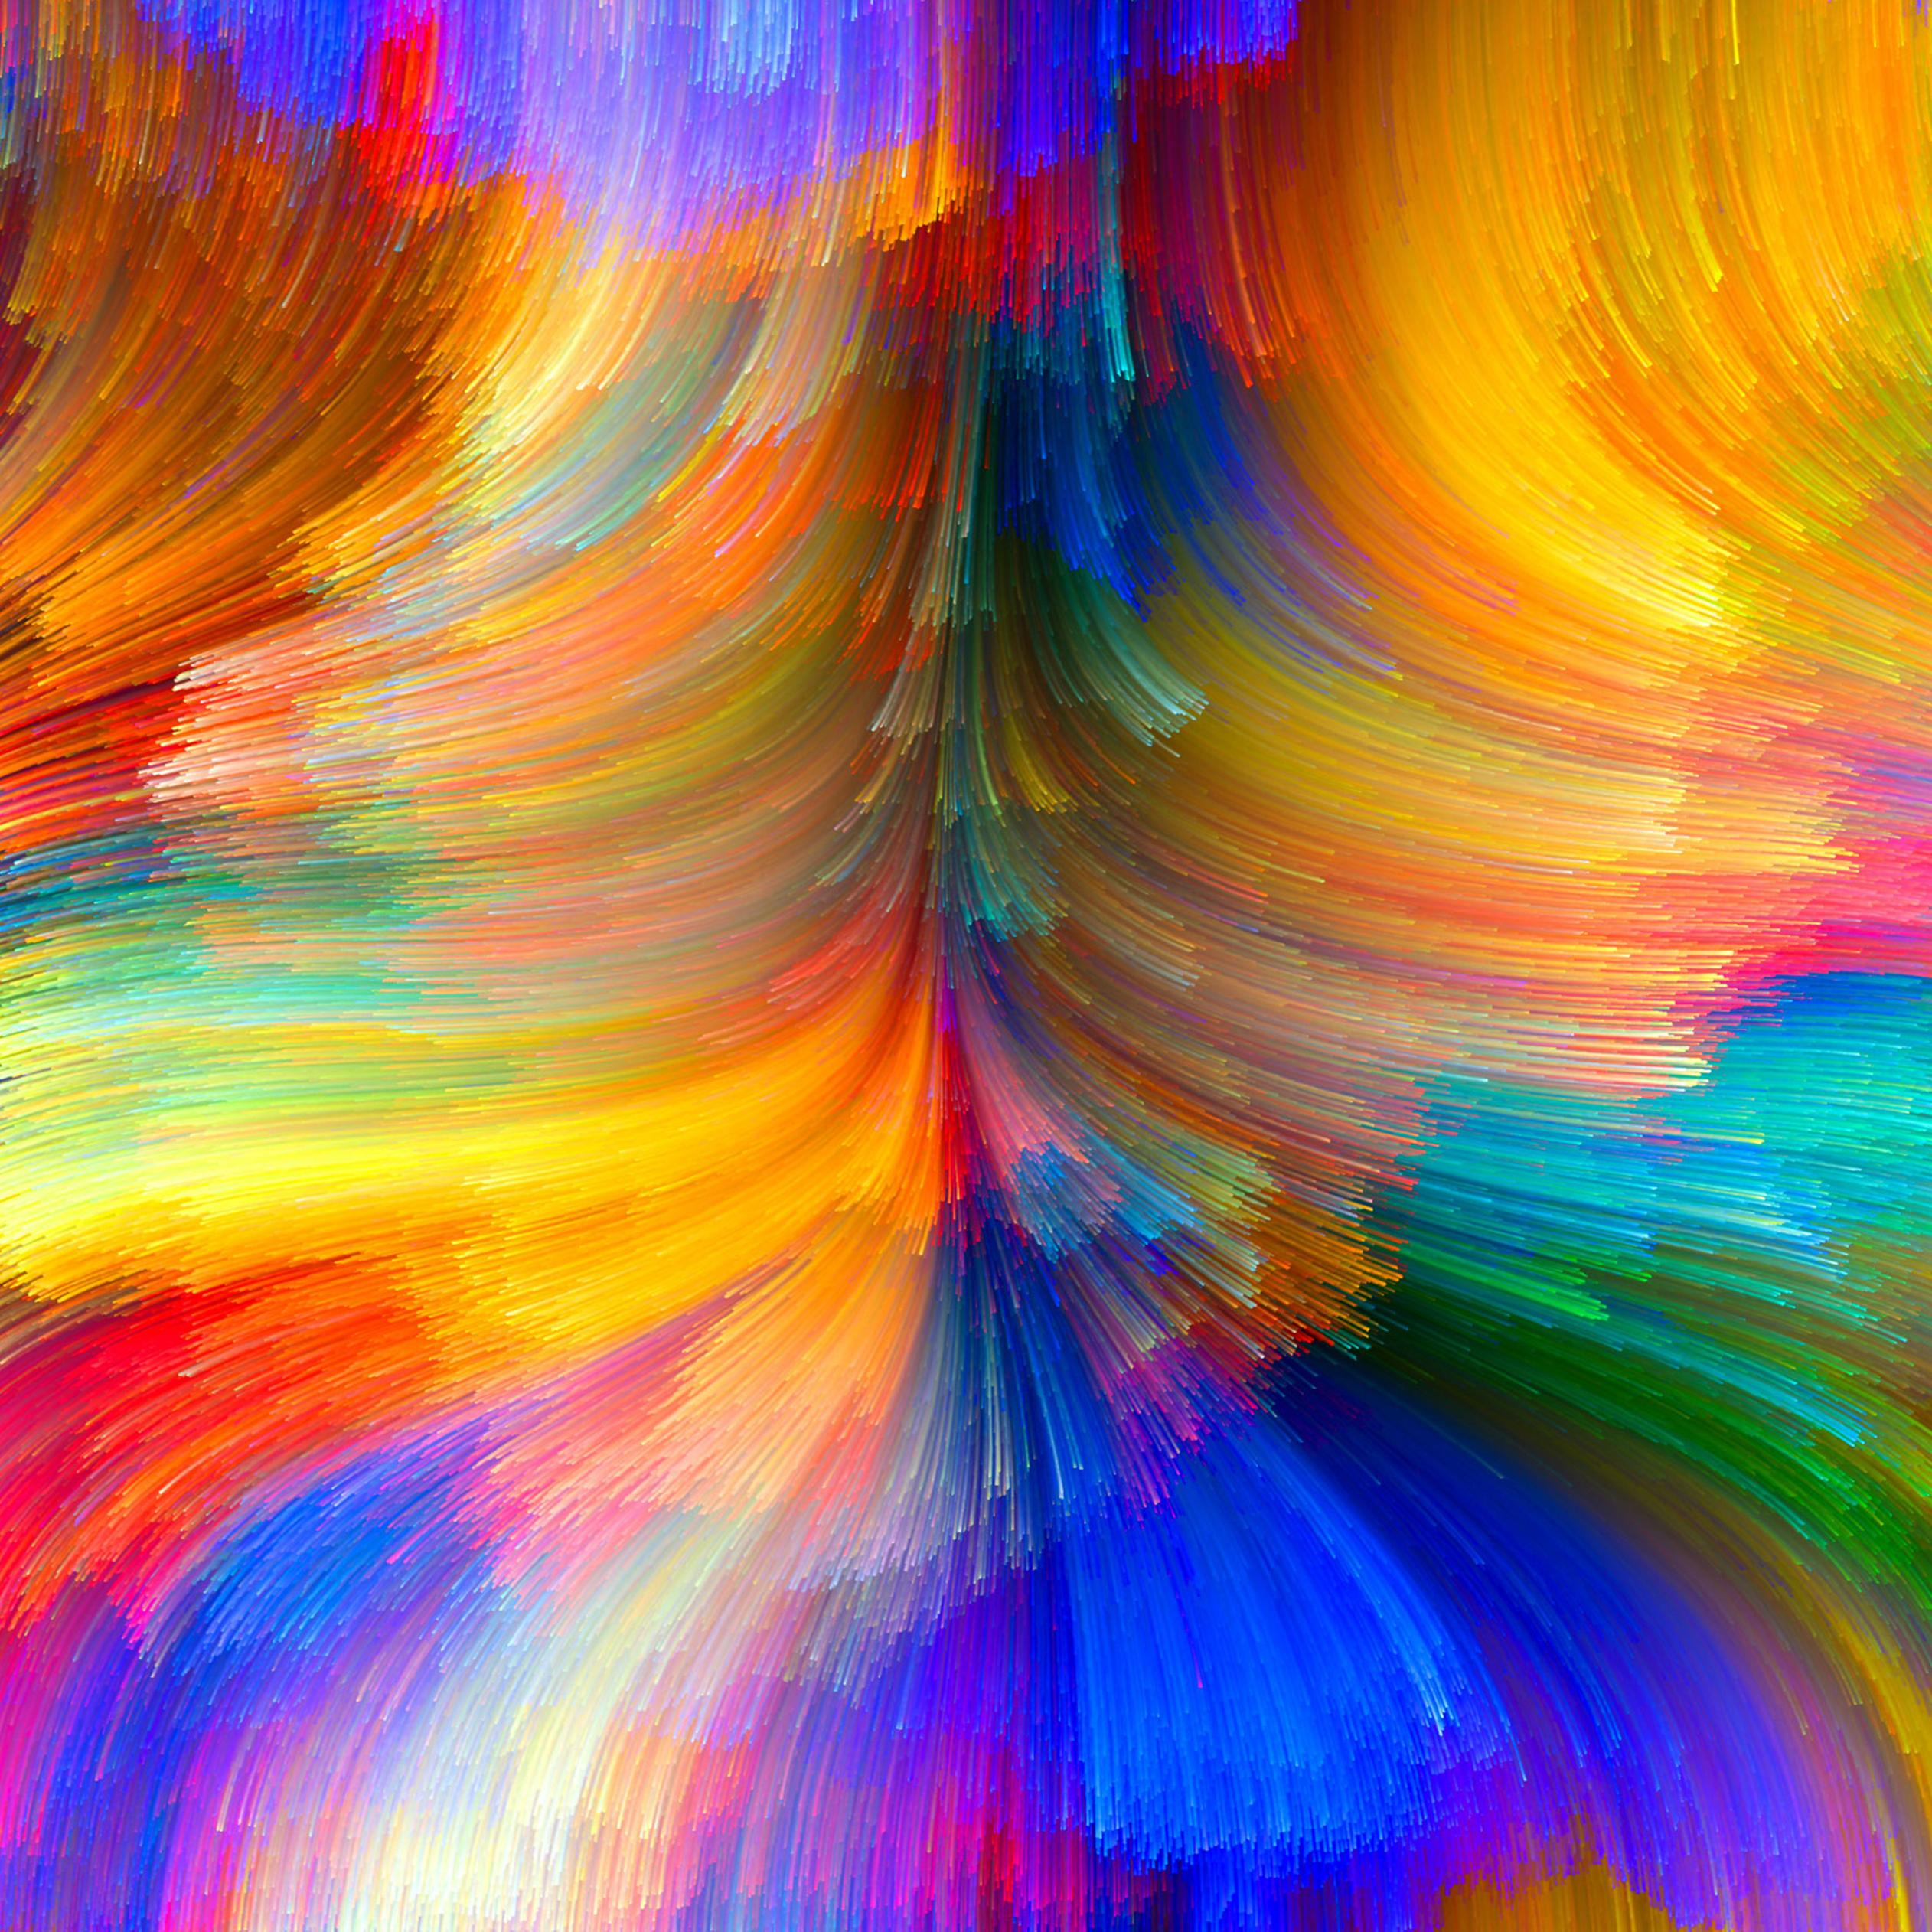 abstract colorful wallpaper - hd bright colors wallpaper download